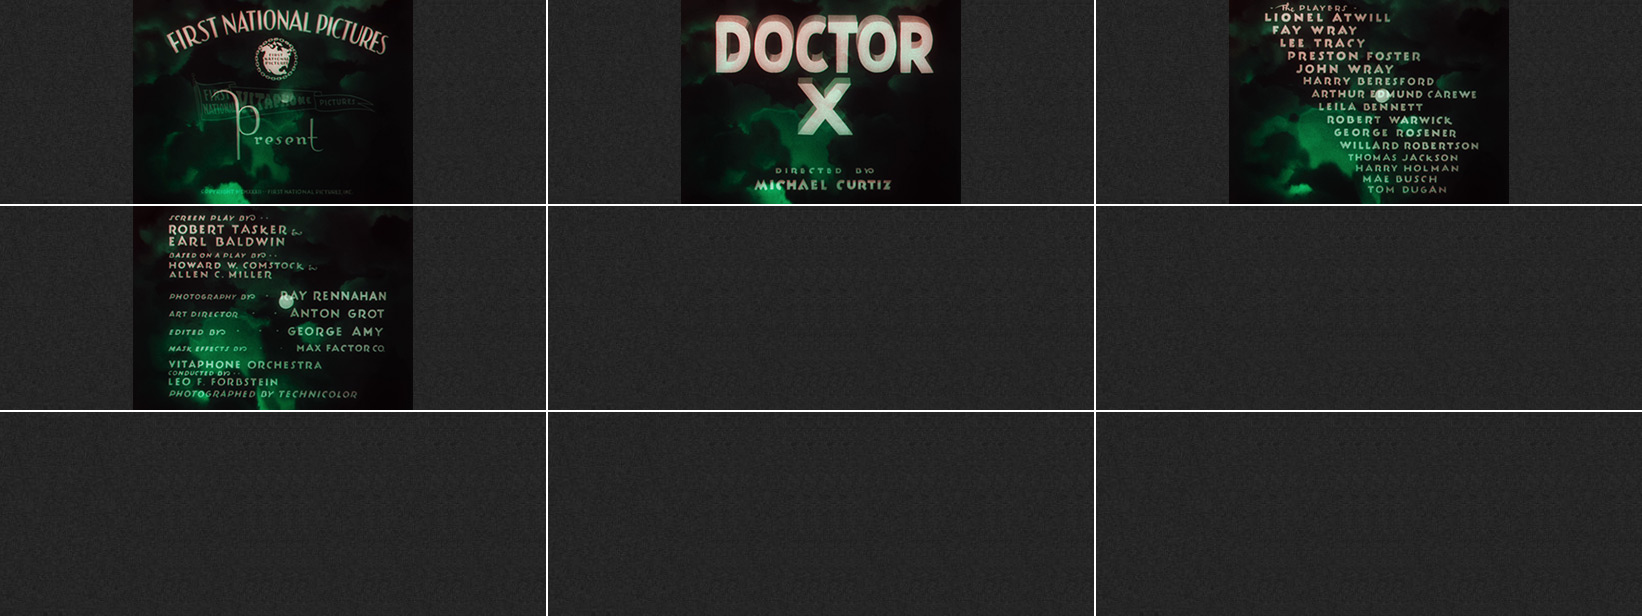 Michael Curtiz: Doctor X (1932) title sequence